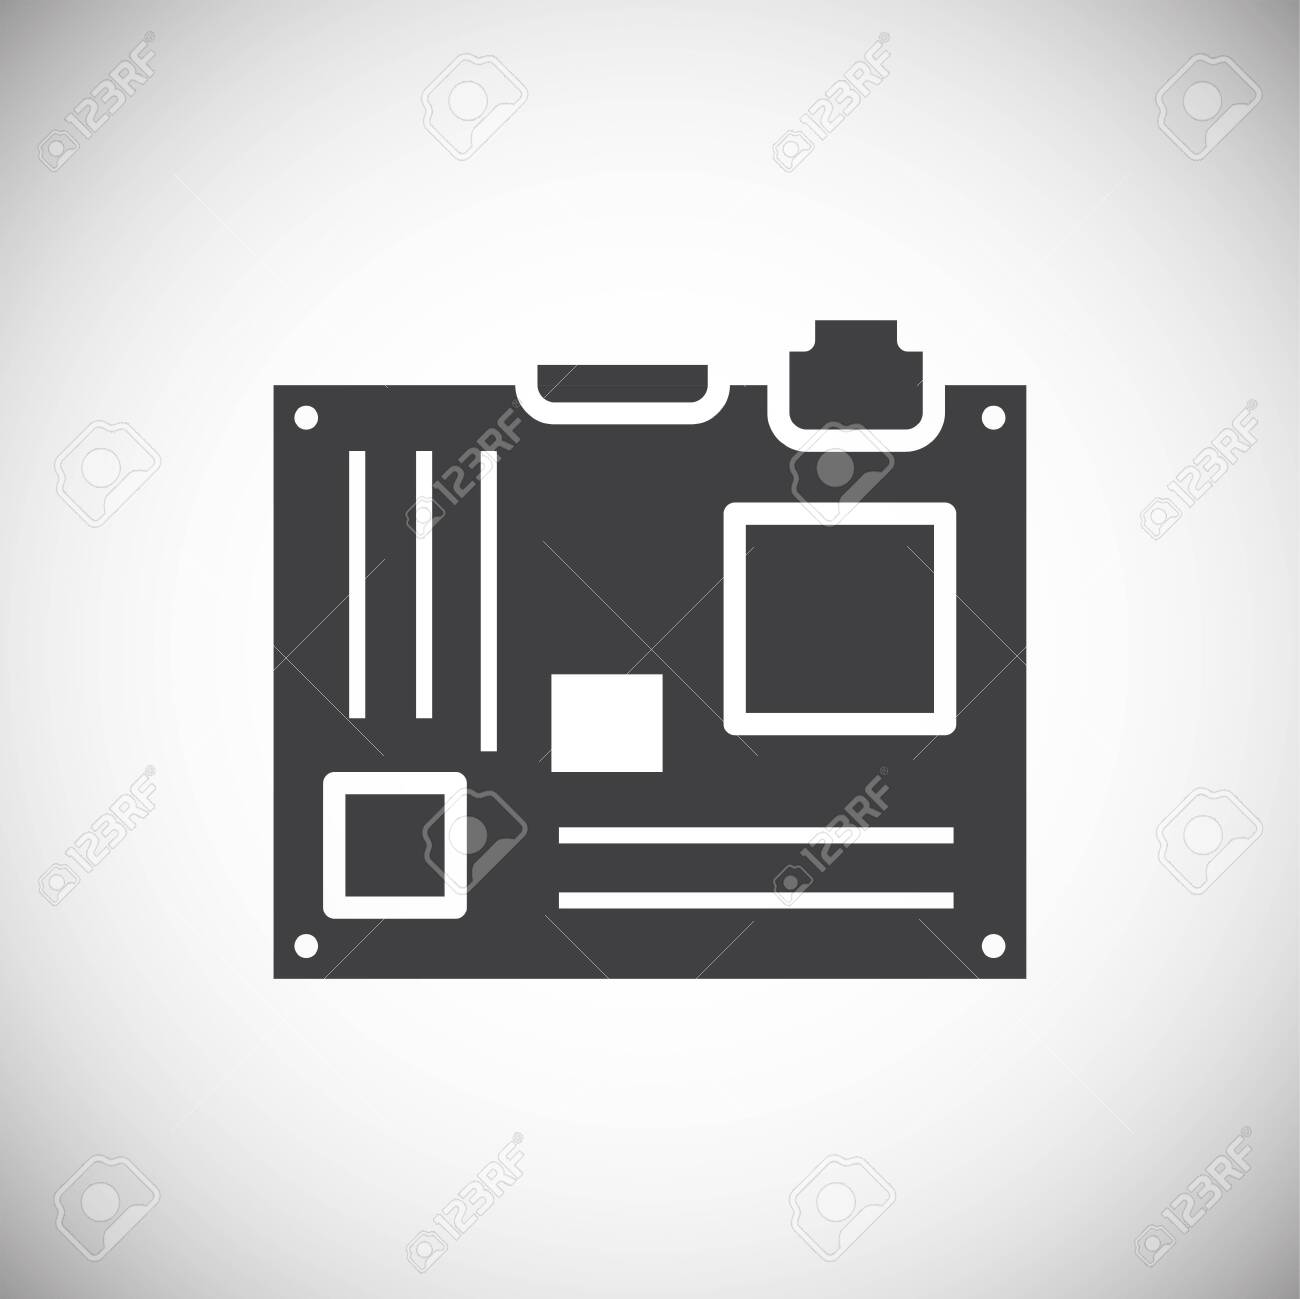 Computer hardware icon on background for graphic and web design. Simple illustration. Internet concept symbol for website button or mobile app - 150814556